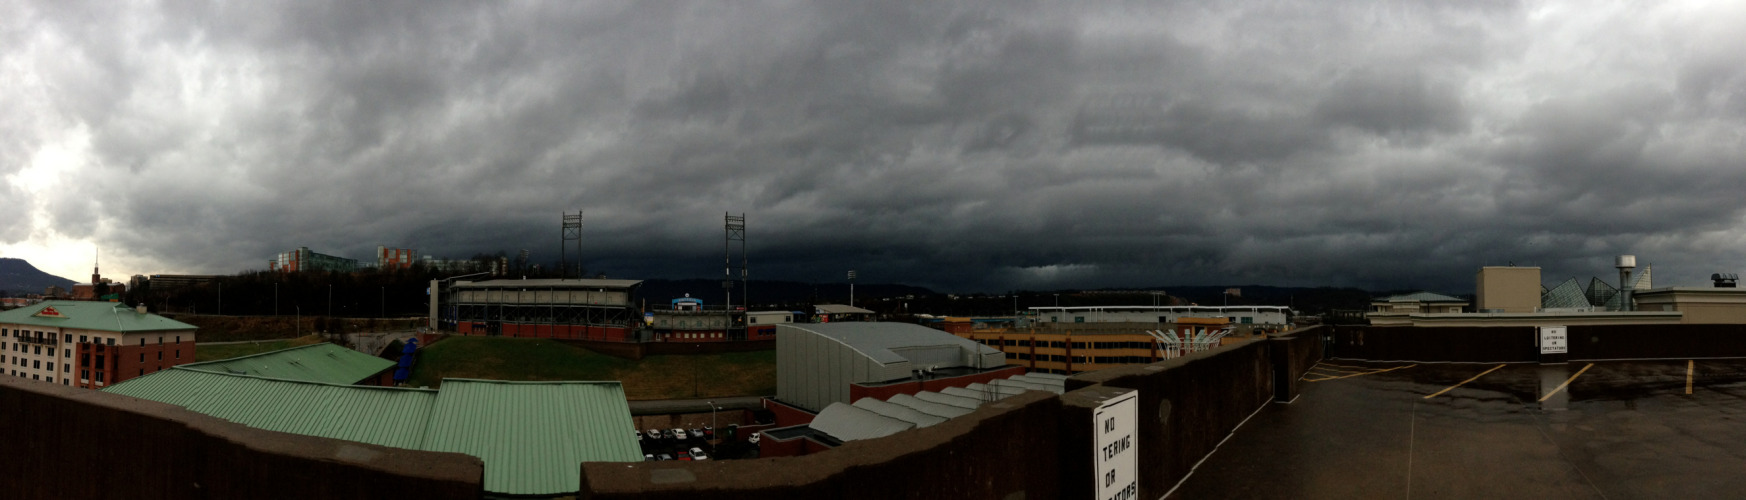 ominously calm before the storm  (PS: This is my first panorama picture using my new iPhone.)